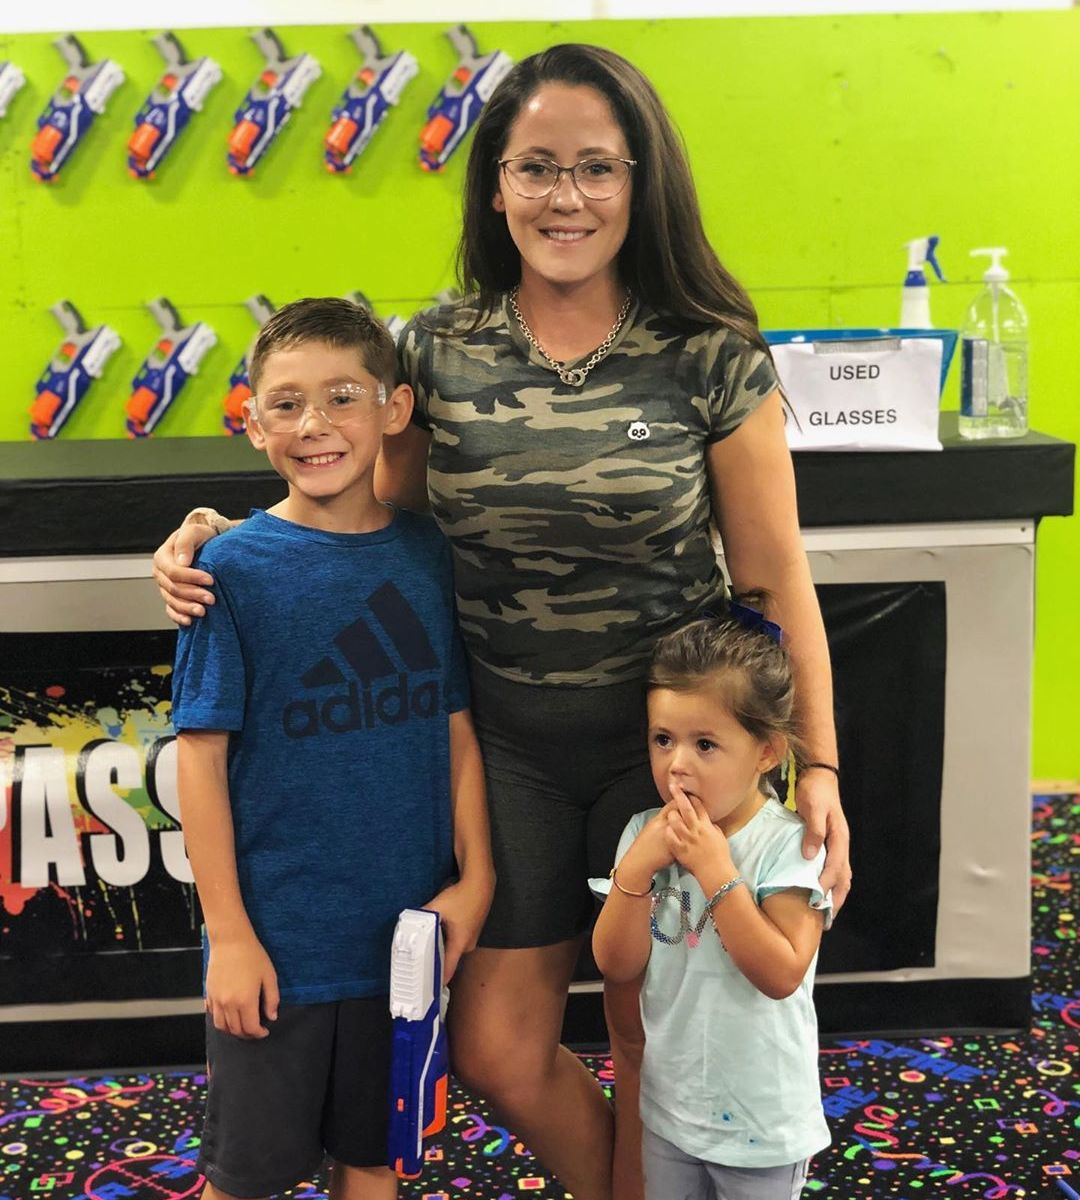 Teen Mom 2': Jenelle Evans Celebrates Jace's 10th Birthday Party